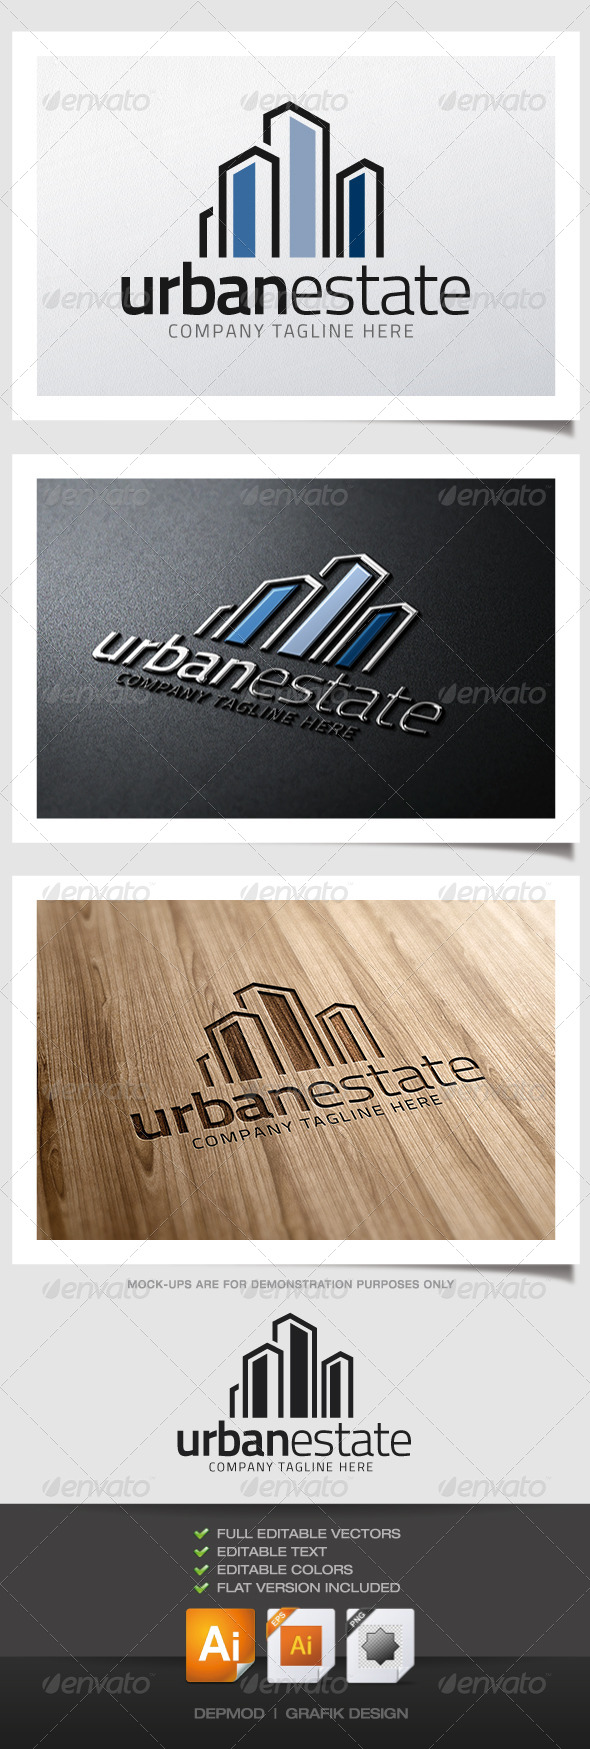 Urban Estate Logo - Buildings Logo Templates